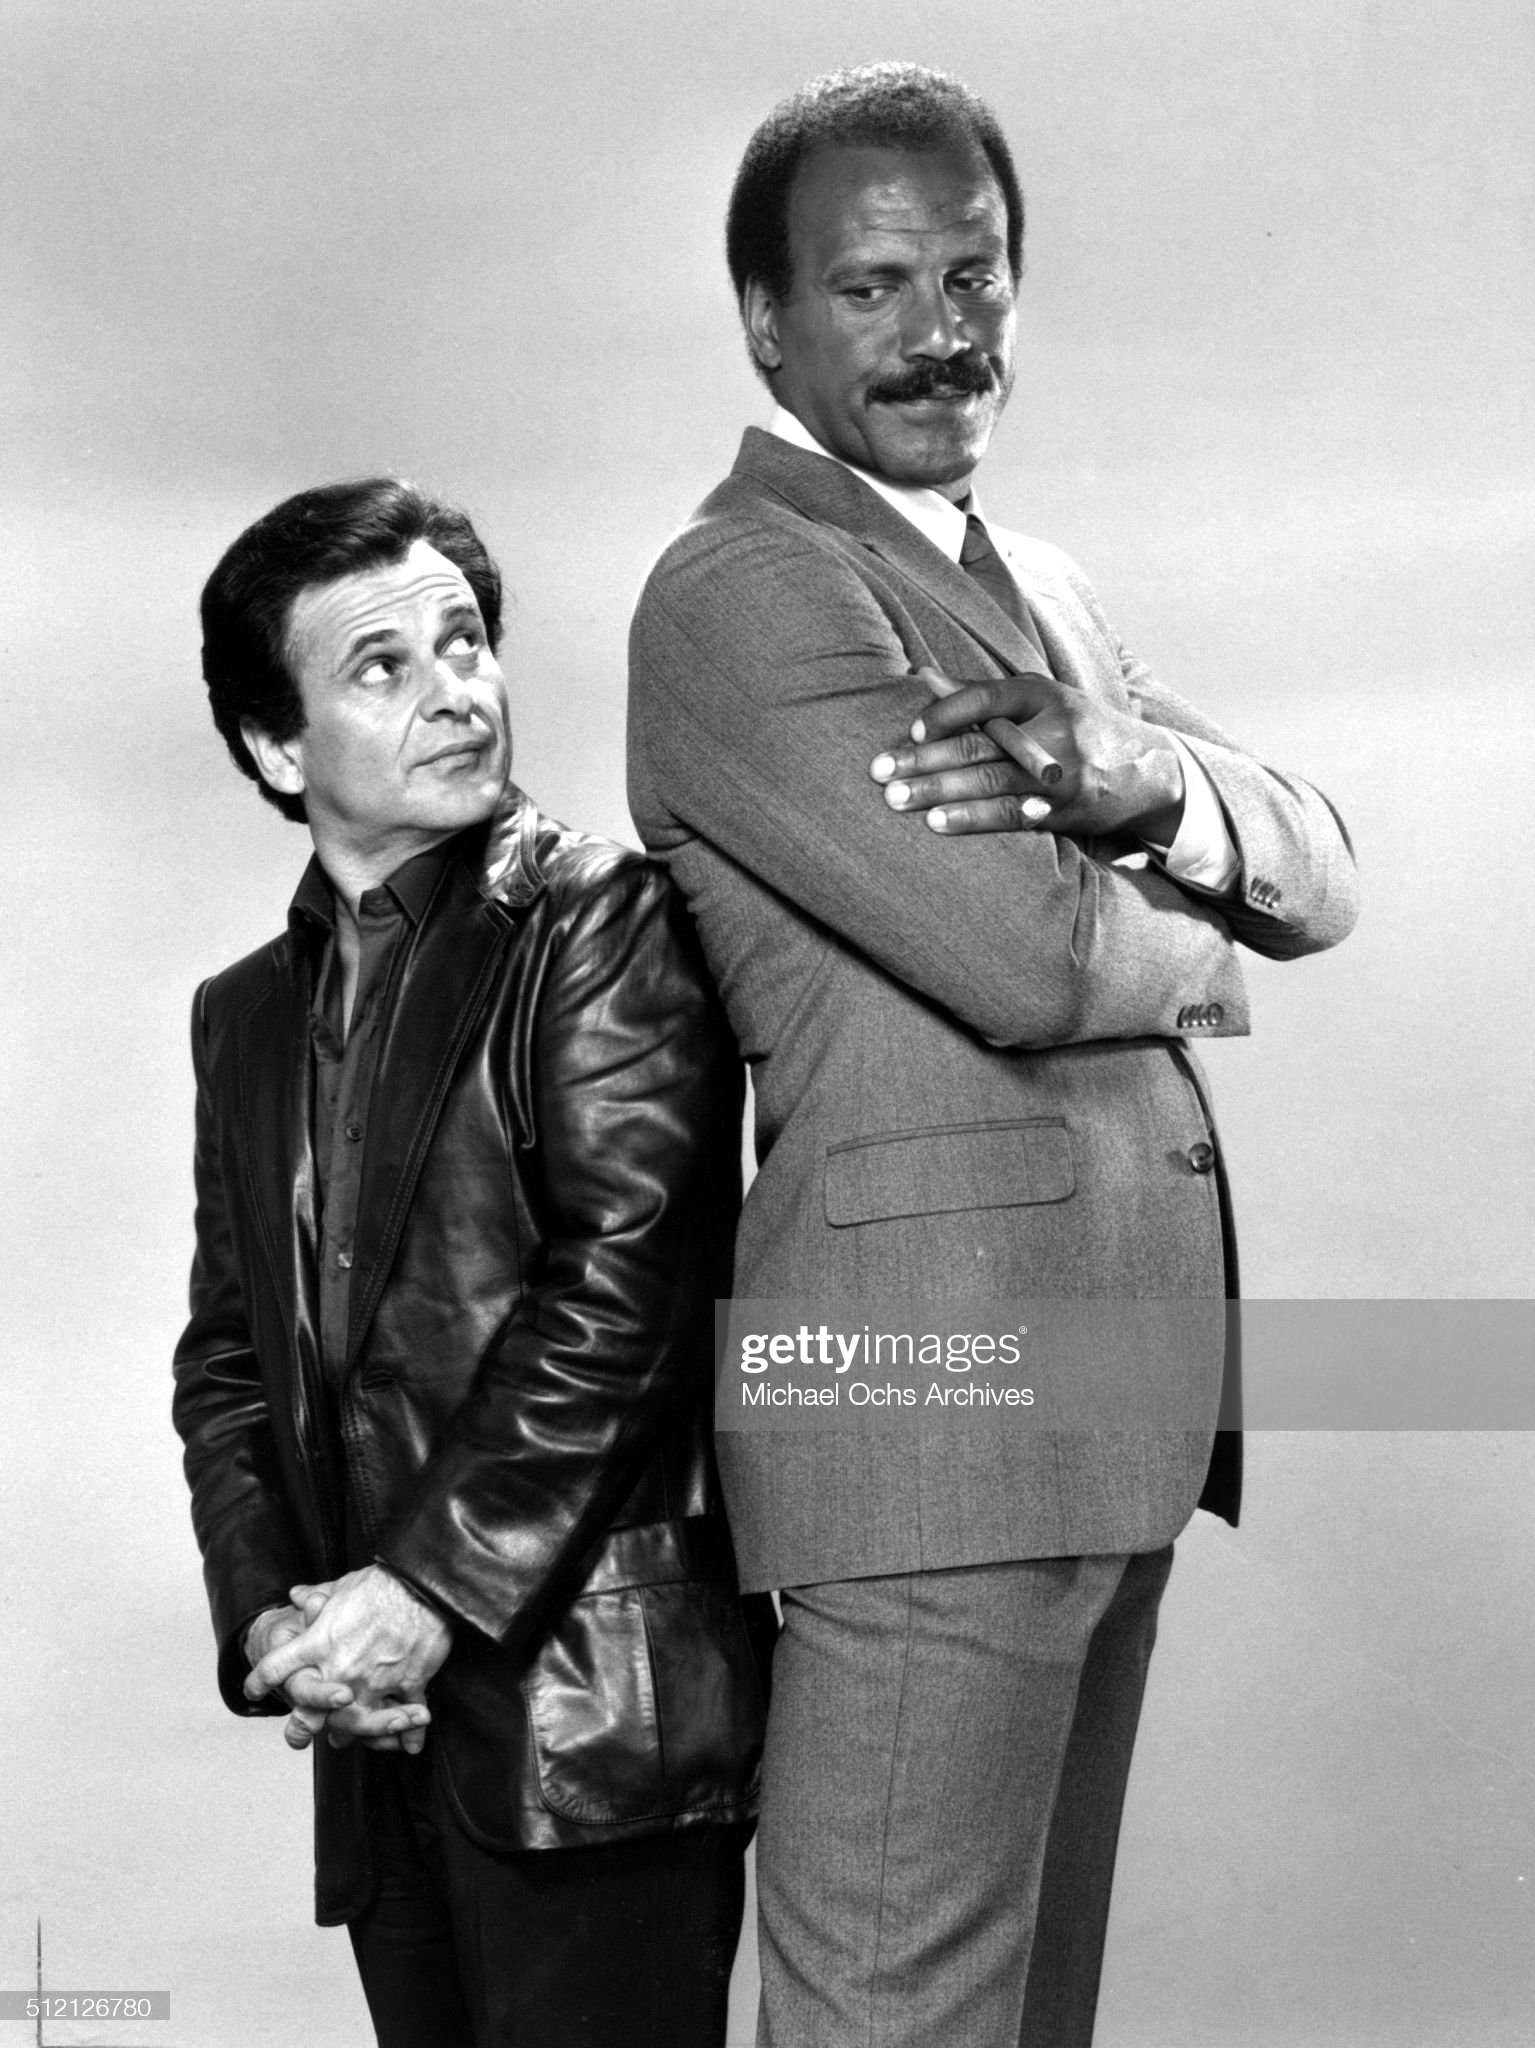 ¿Cuánto mide Joe Pesci? - Altura - Real height Actors-joe-pesci-and-fred-williamson-pose-for-a-portrait-for-the-tv-picture-id512126780?s=2048x2048